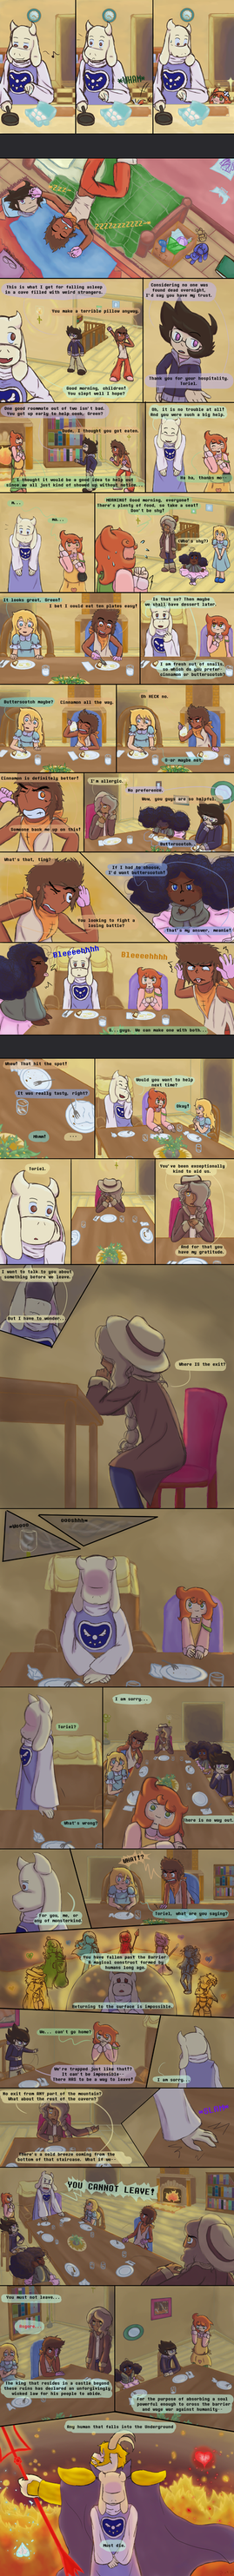 TSWFBY-page 10 by Passionrising